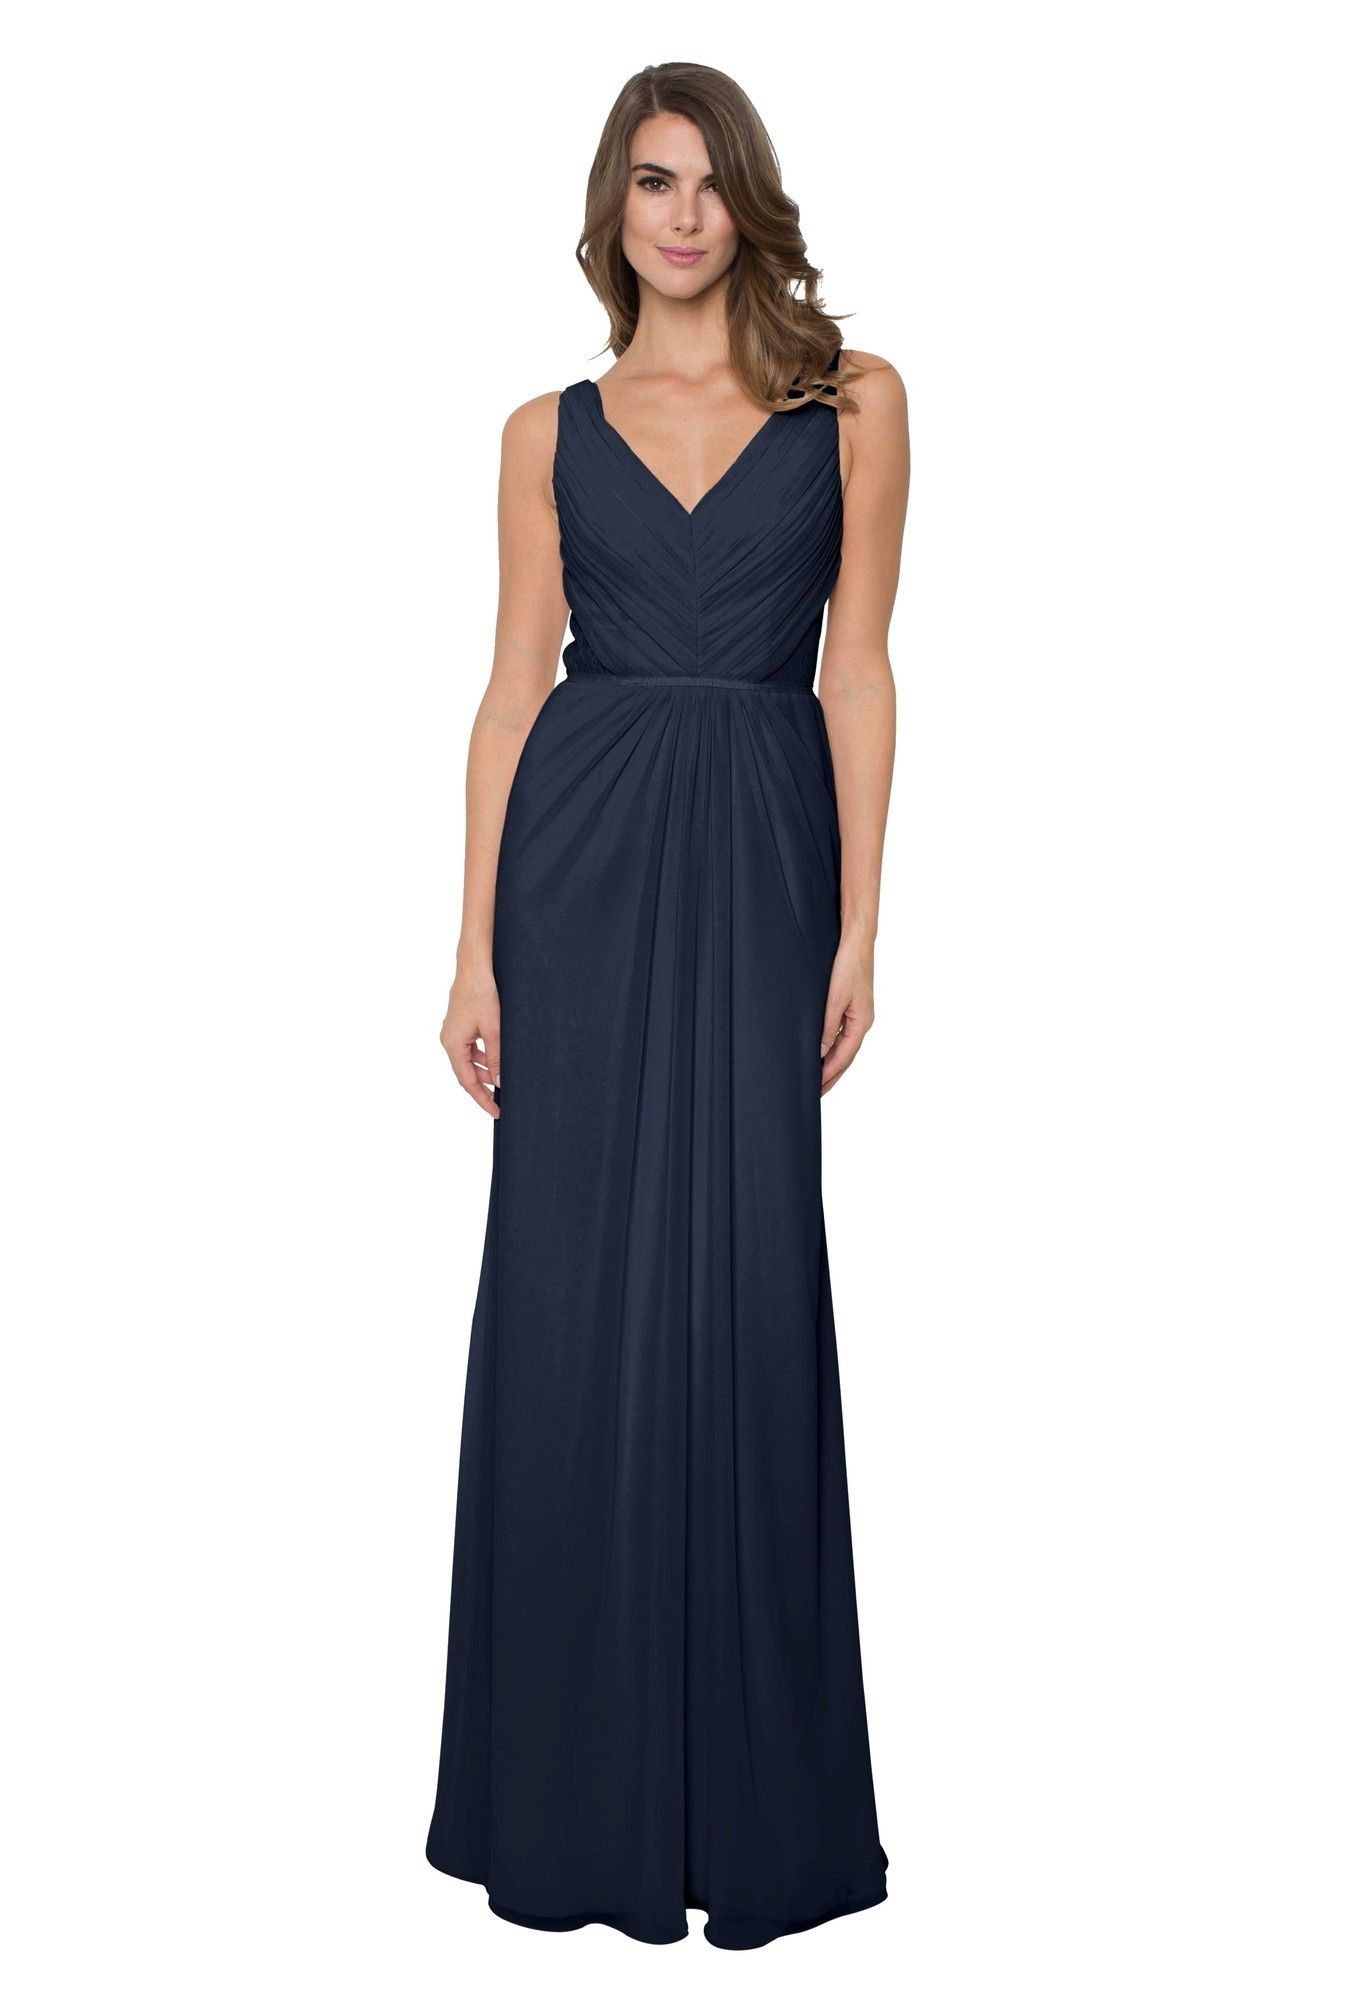 Monique Lhuillier Amelia Dress In Navy This Bridesmaid Is A V Neck Chiffon Gown With Beautiful Fl Lace Back That Wraps Around To Covered